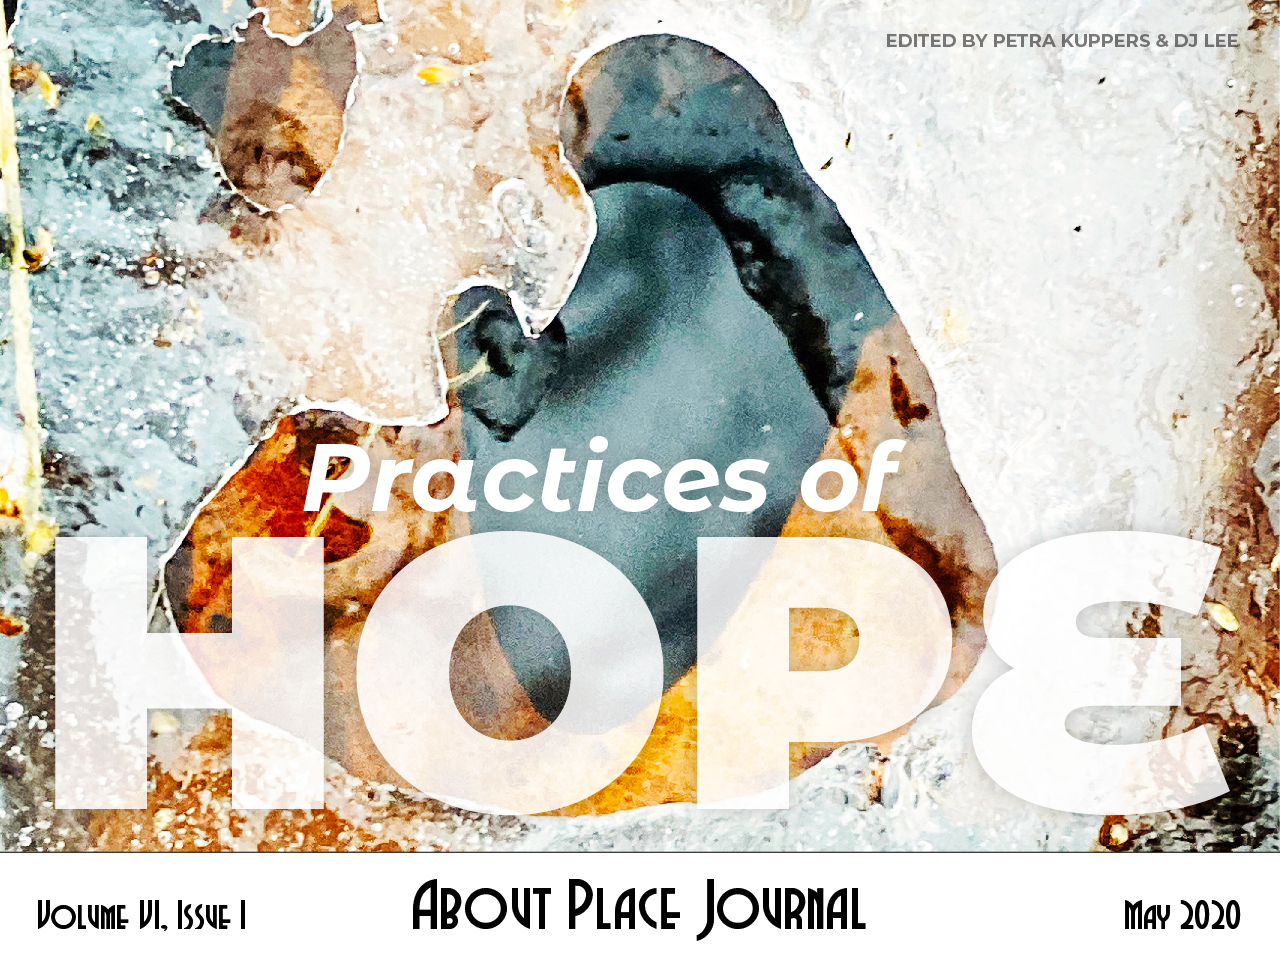 Practices of Hope cover – Volume VI, Issue I, About Place Journal, May 2020 – Edited by Petra Kuppers and DJ Lee